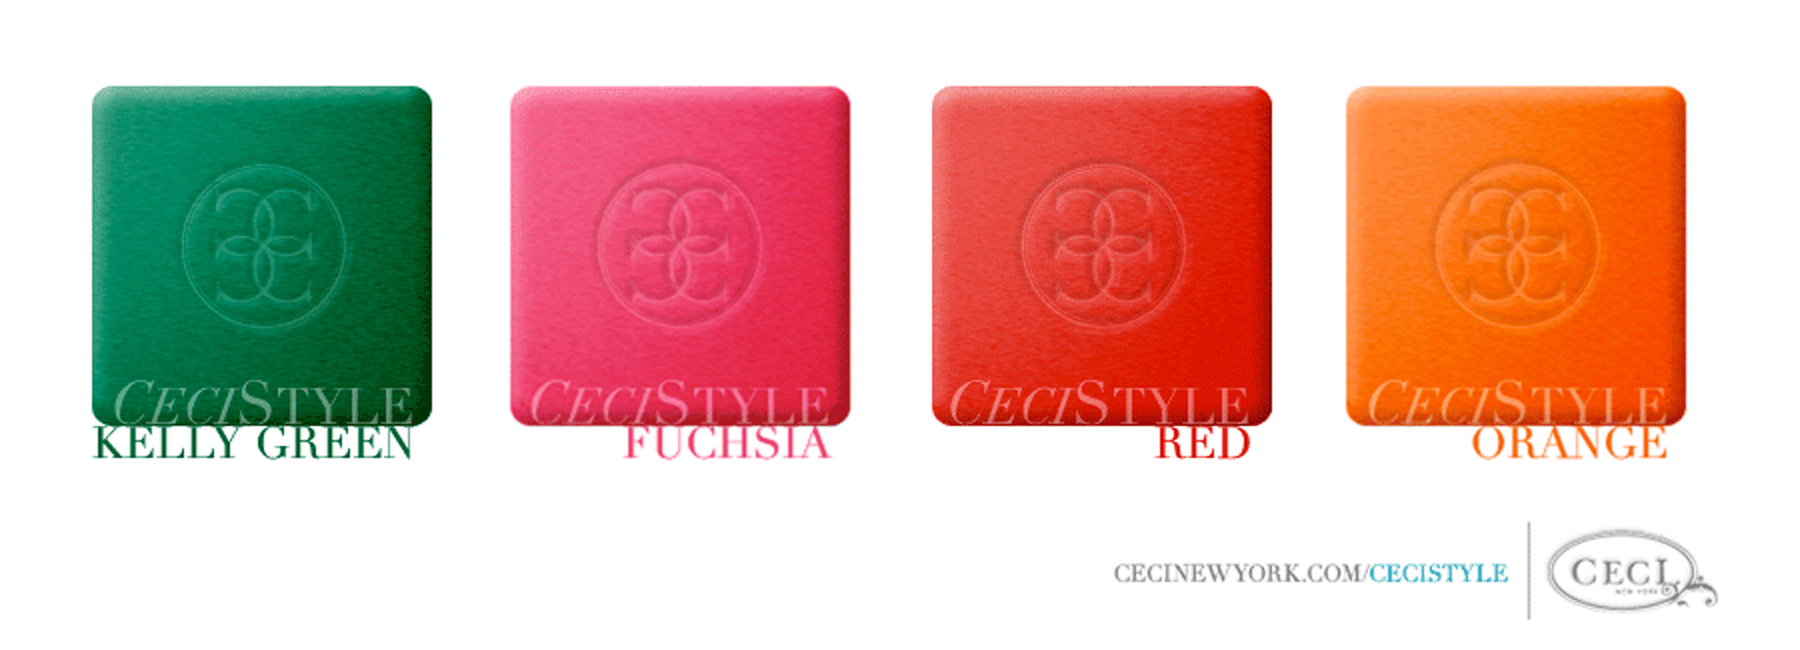 Ceci's Color Stories - Fuchsia & Red Wedding Colors - color swatches, kelly green, fuchsia, red, orange, wedding